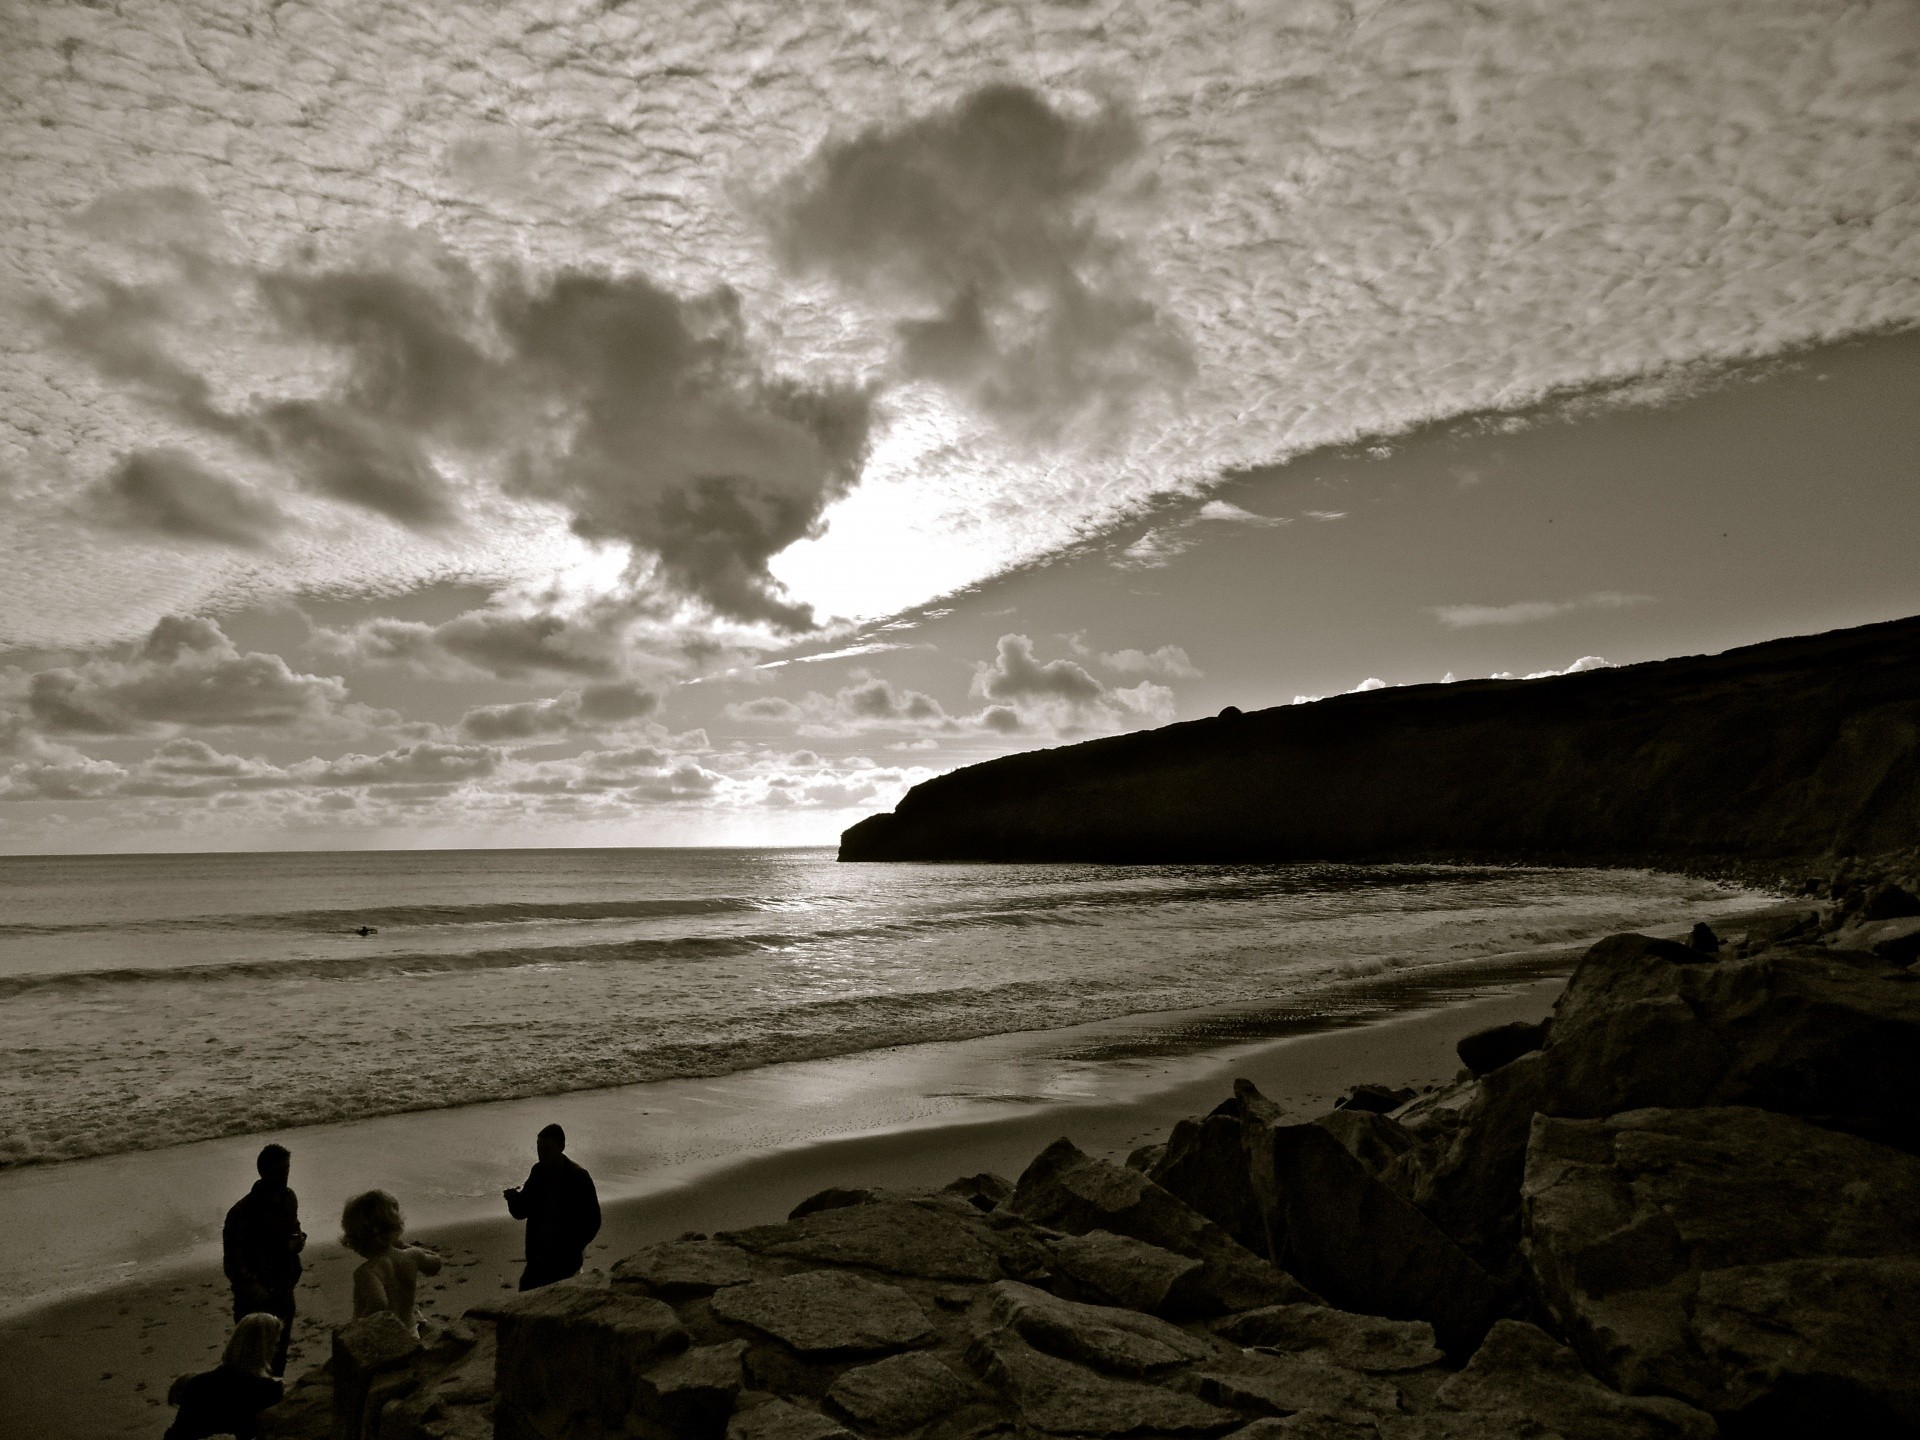 Ben Tredinnick's photo of Praa Sands